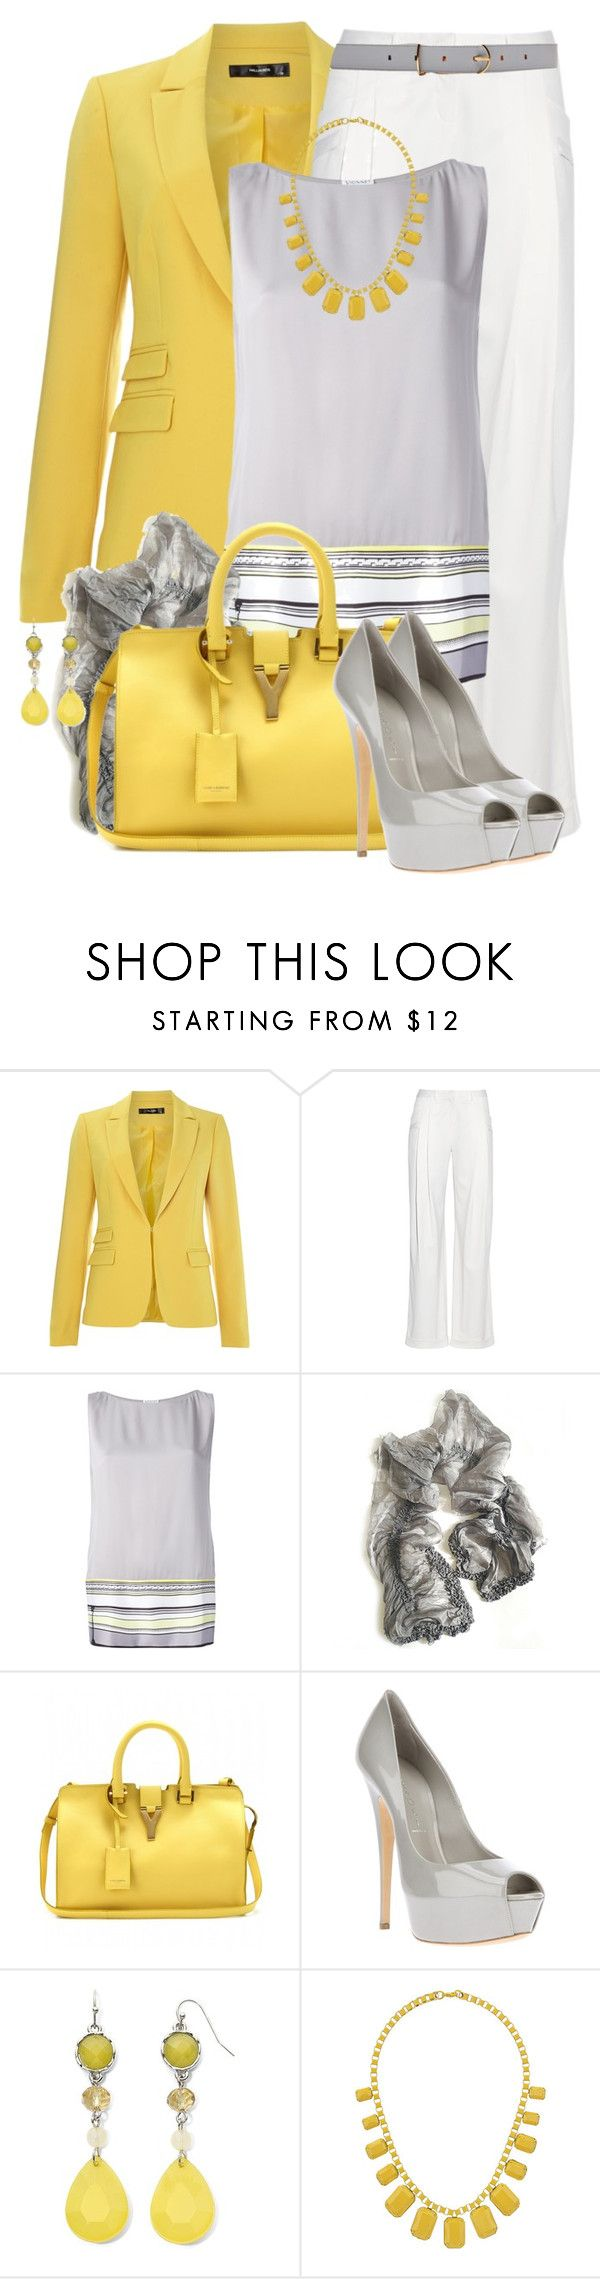 """""""Yellow & Gray"""" by brendariley-1 ❤ liked on Polyvore featuring Hallhuber, Balmain, Vionnet, Yuh Okano, Yves Saint Laurent, Casadei, Mixit, Topshop and Maison Boinet"""